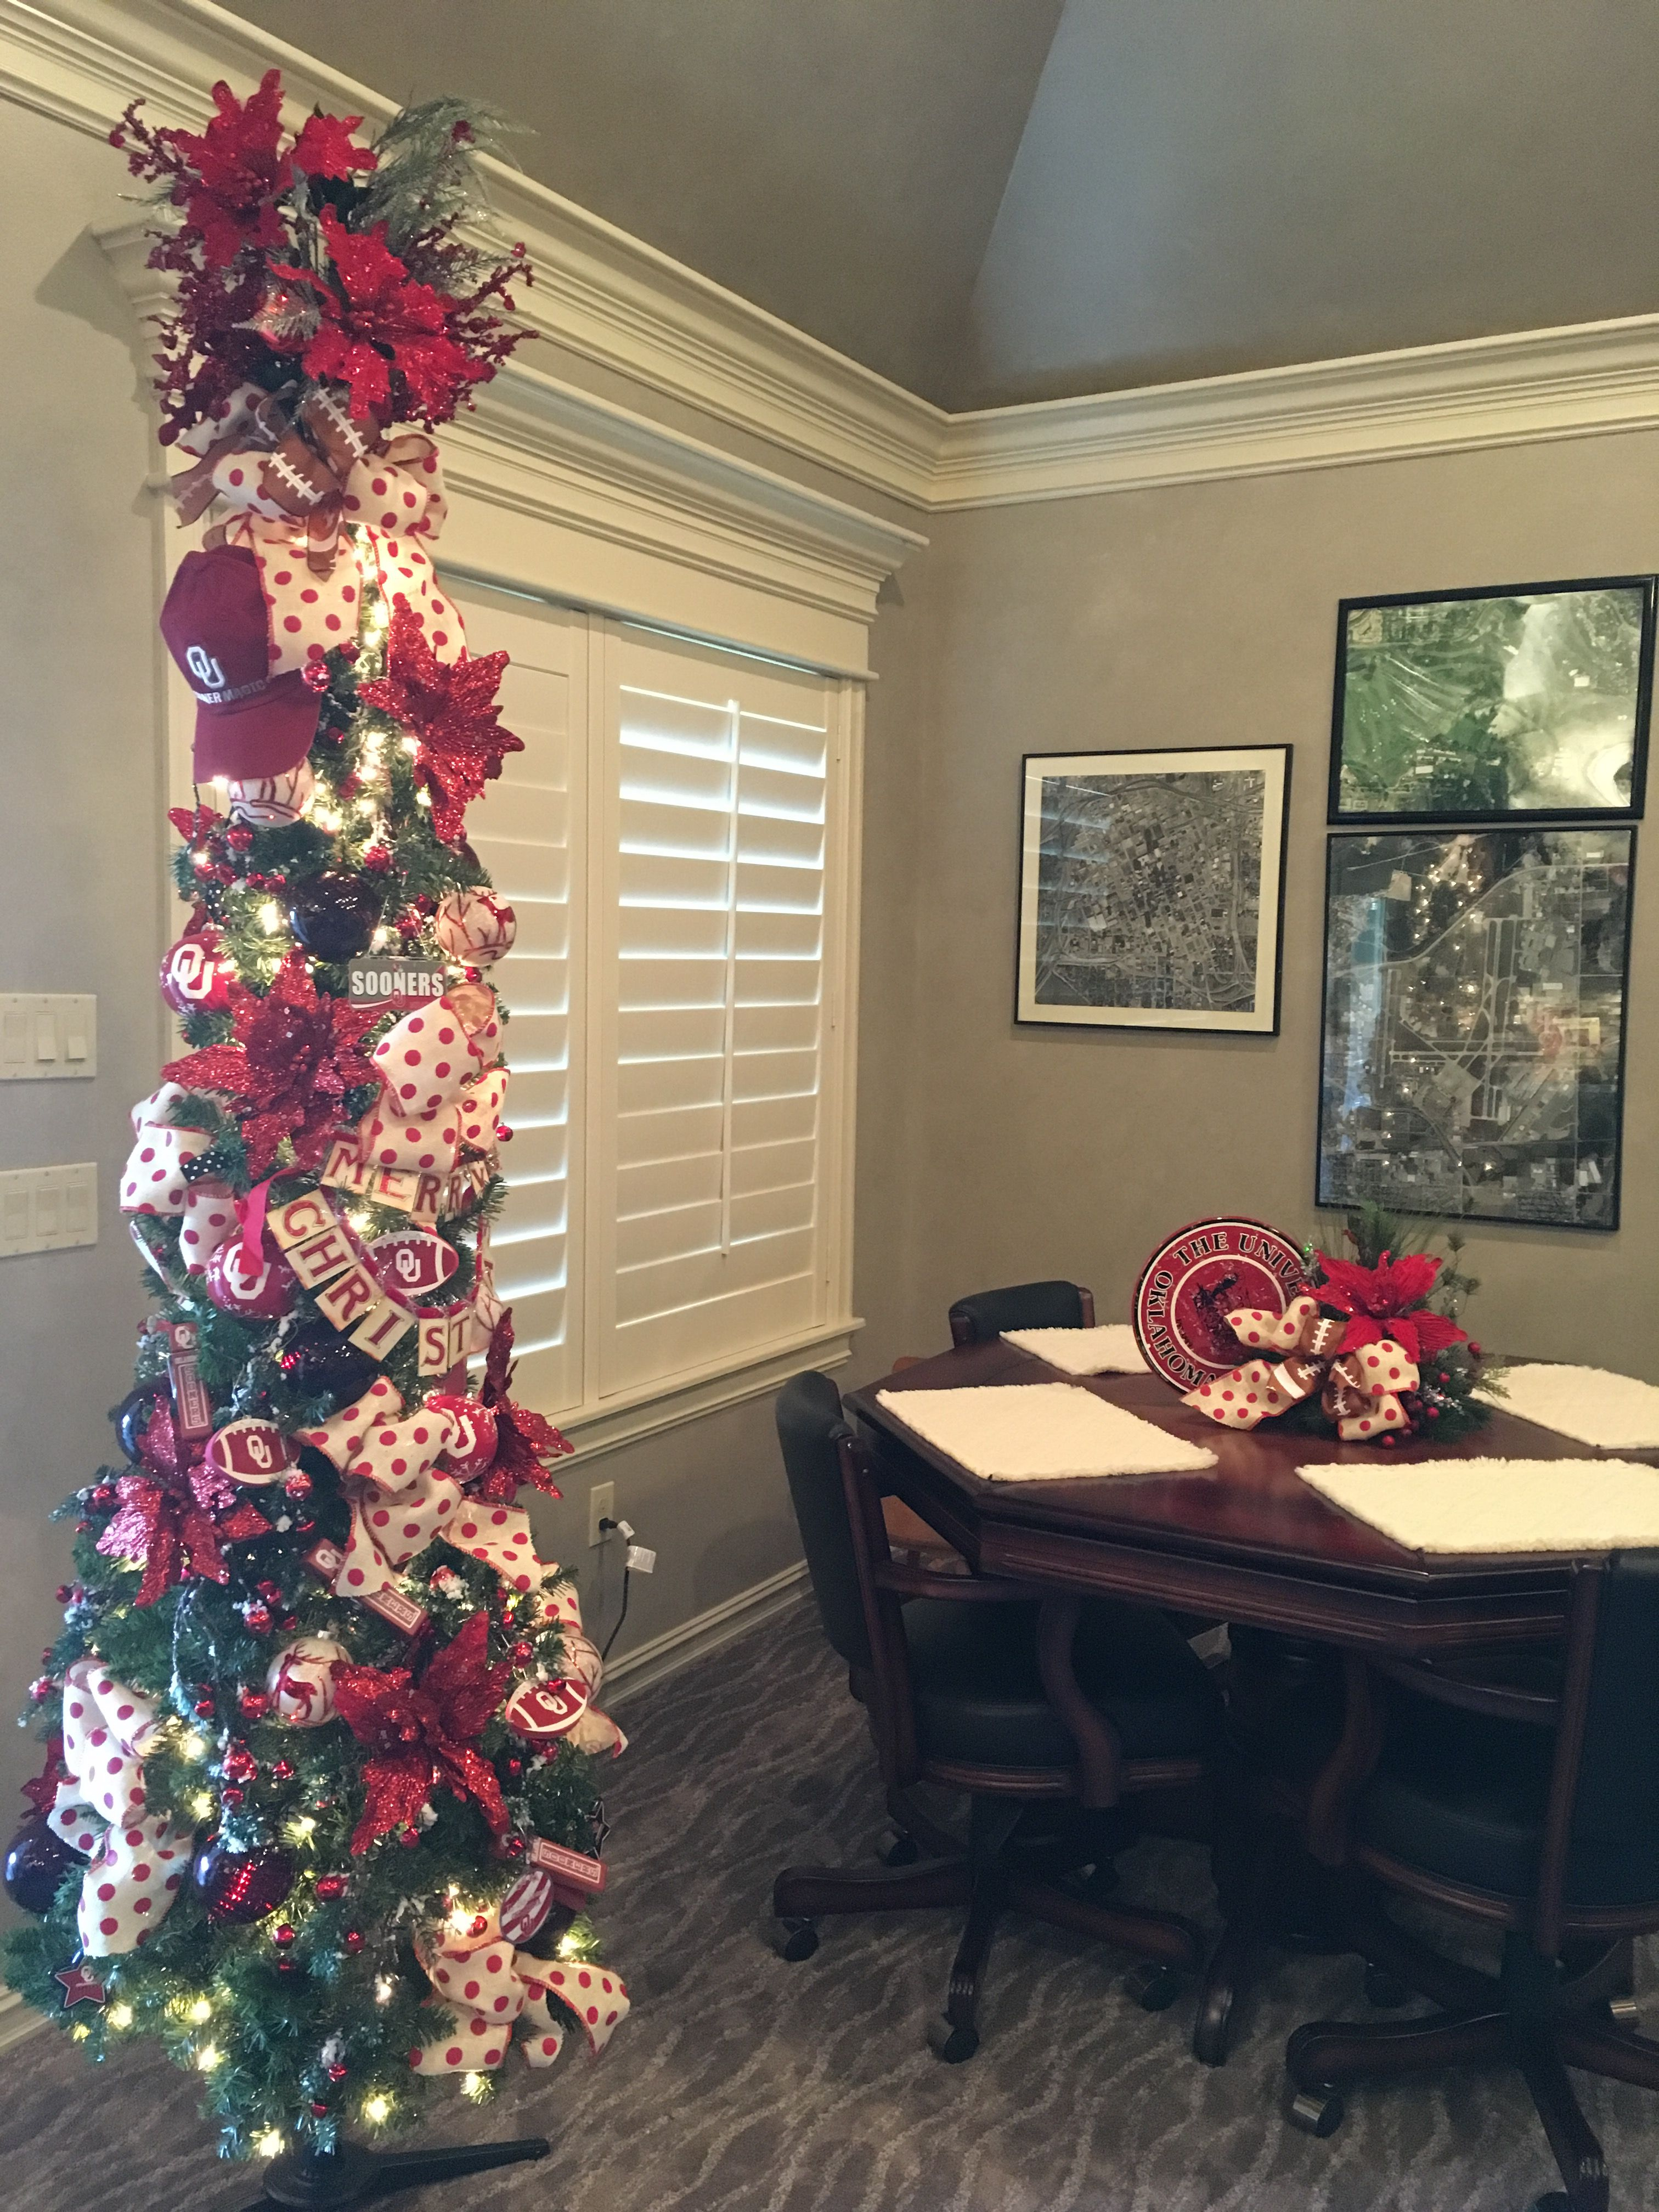 OU Game Room Christmas Tree by ME Interiors | Holiday deco